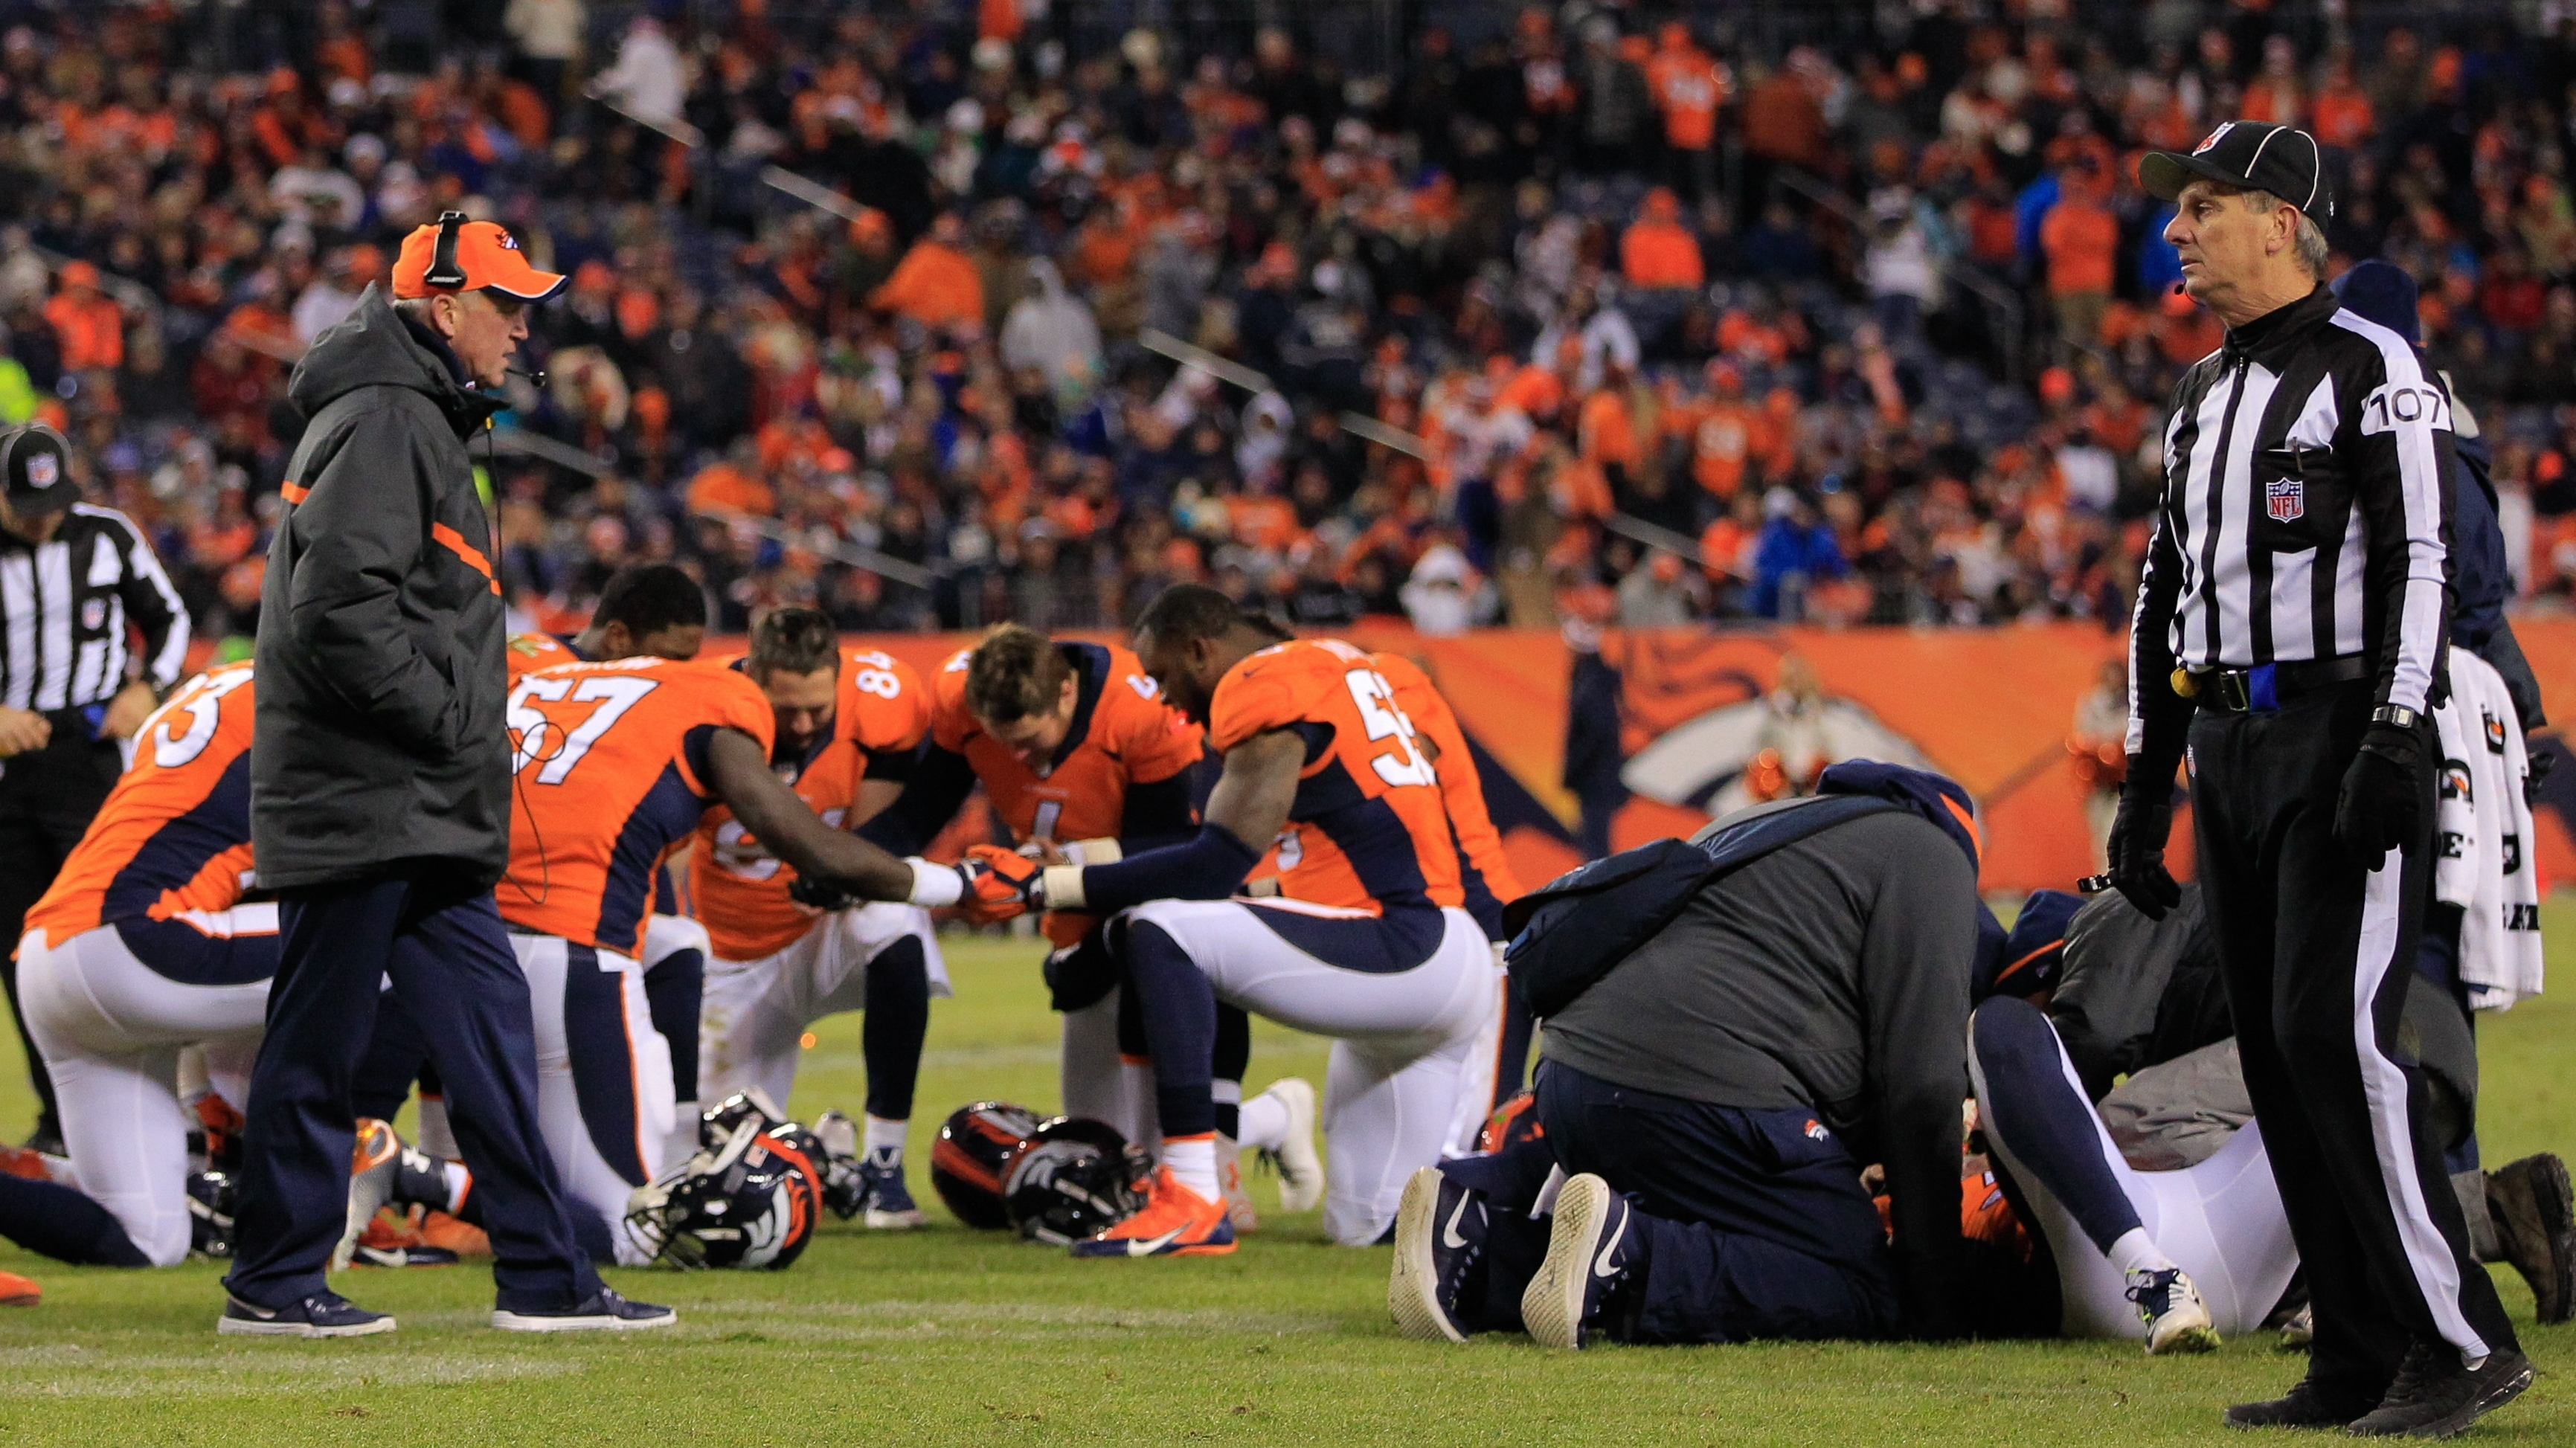 Before Monday, no NFL official had publicly acknowledged a link between football and chronic traumatic encephalopathy. Here, members of the Denver Broncos are seen after one of their teammates suffered a concussion during a game in late 2014. Doug Pensinger/Getty Images